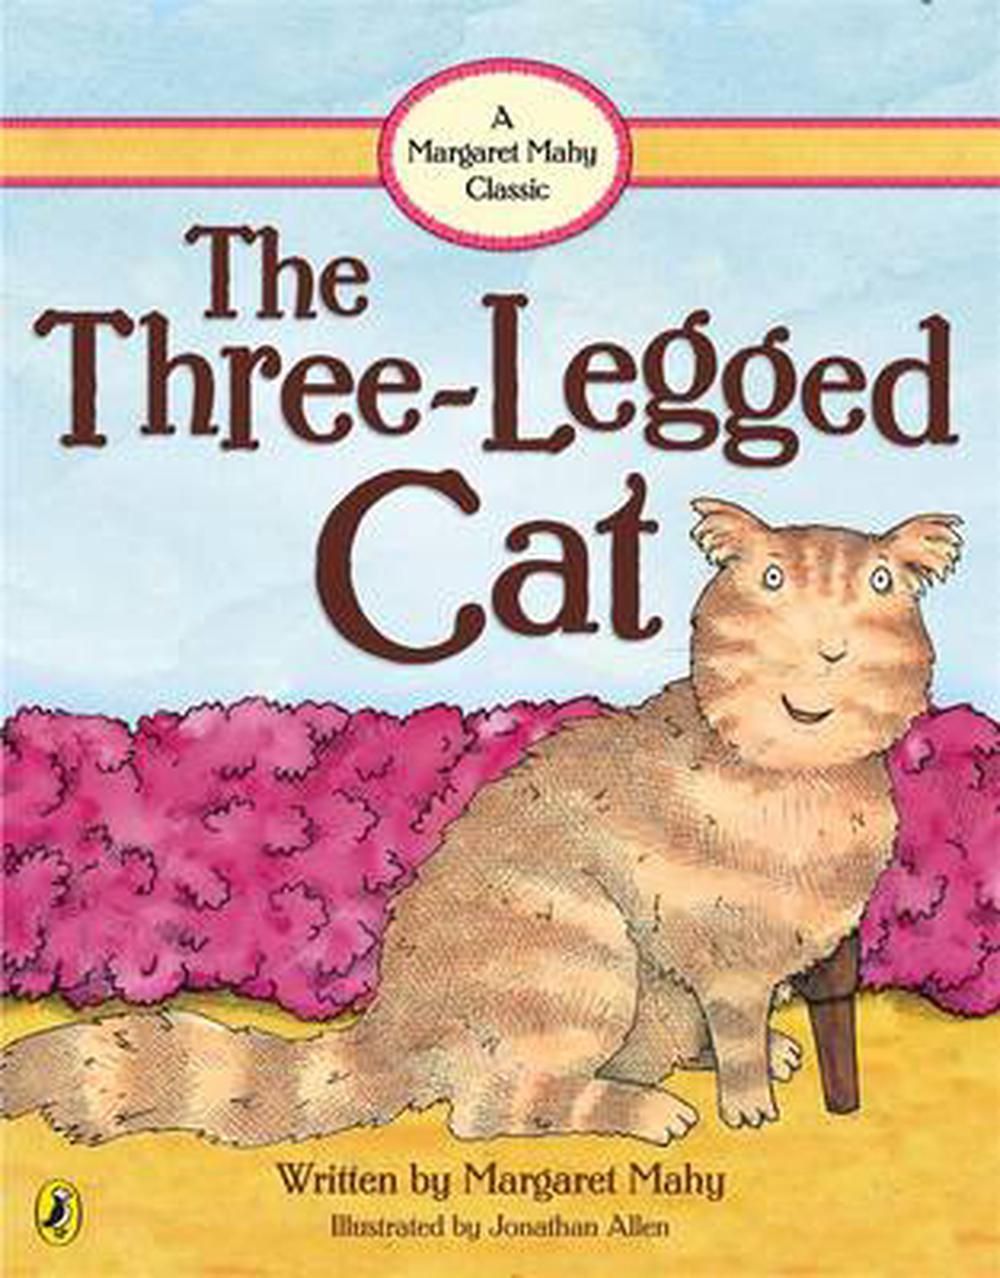 The Three-legged Cat